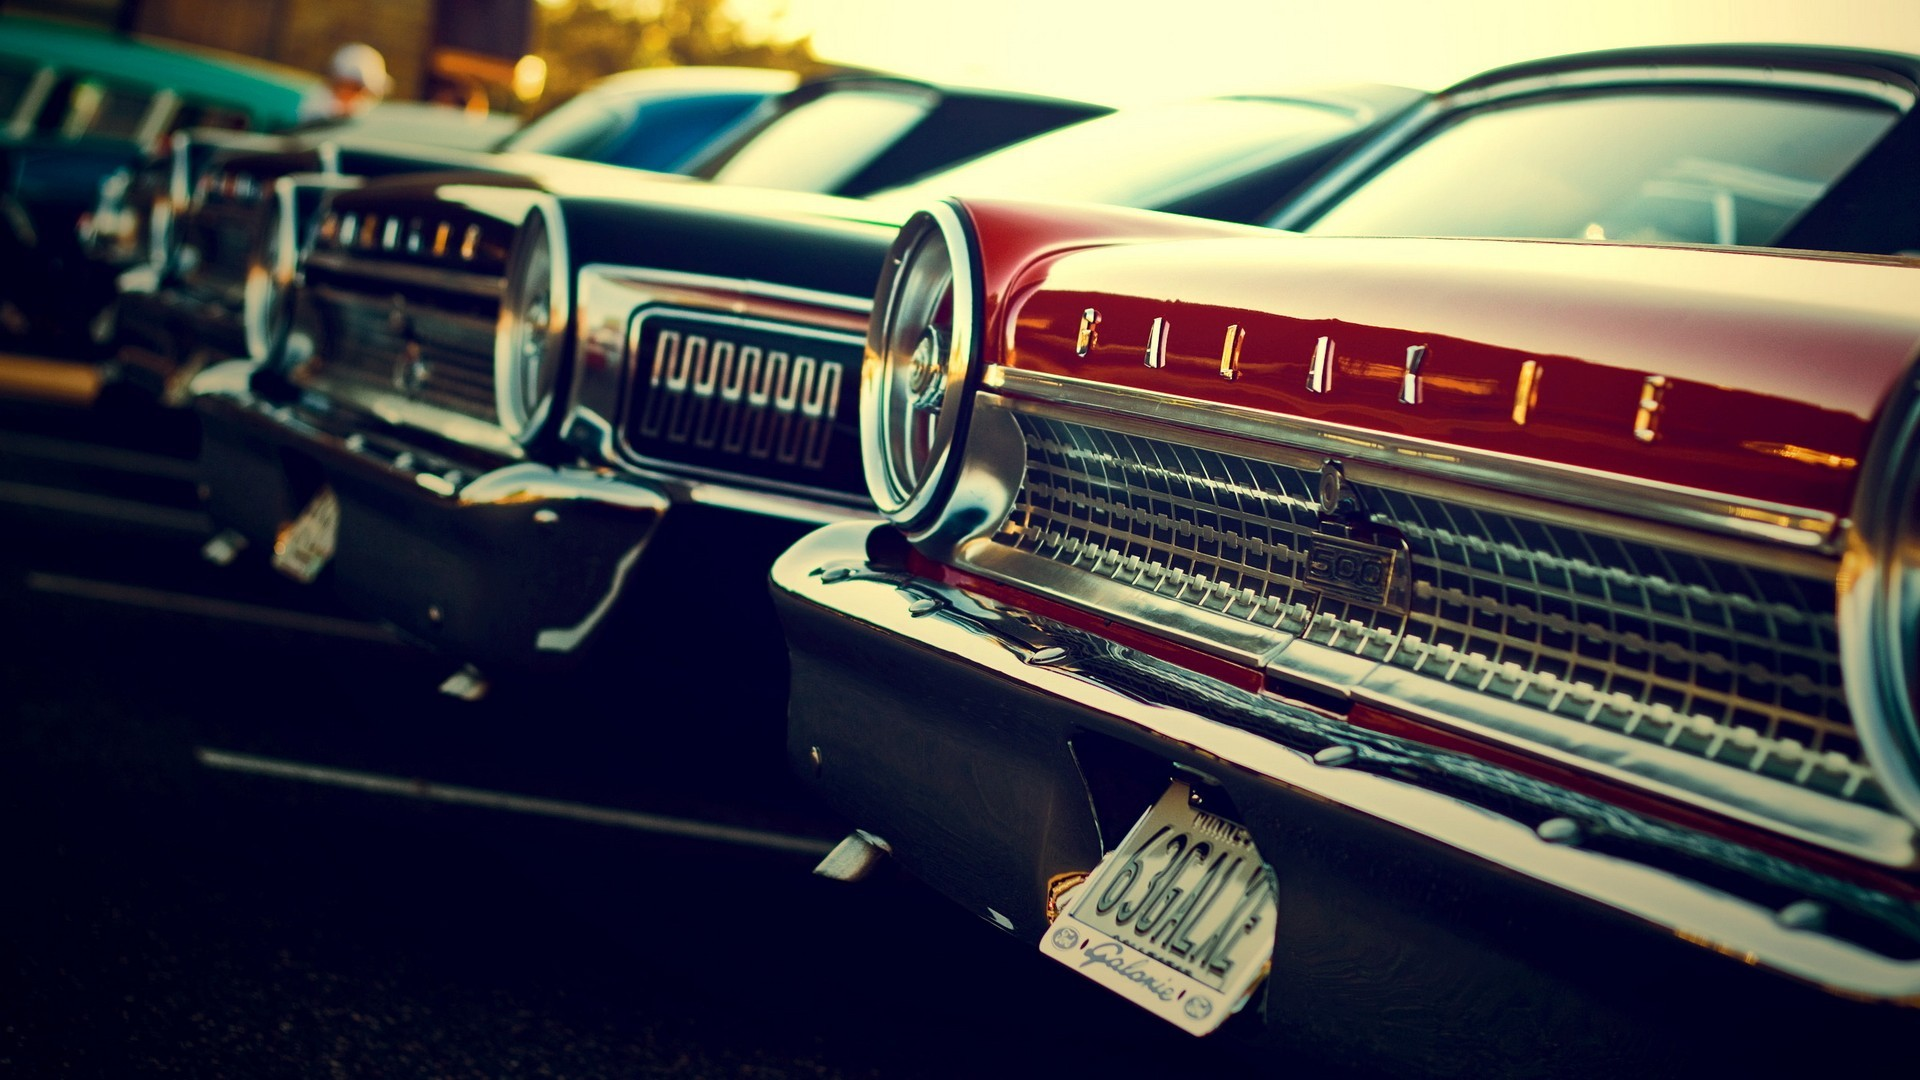 classic cars wallpaper, Wallpapers, HD 1080p, Desktop .